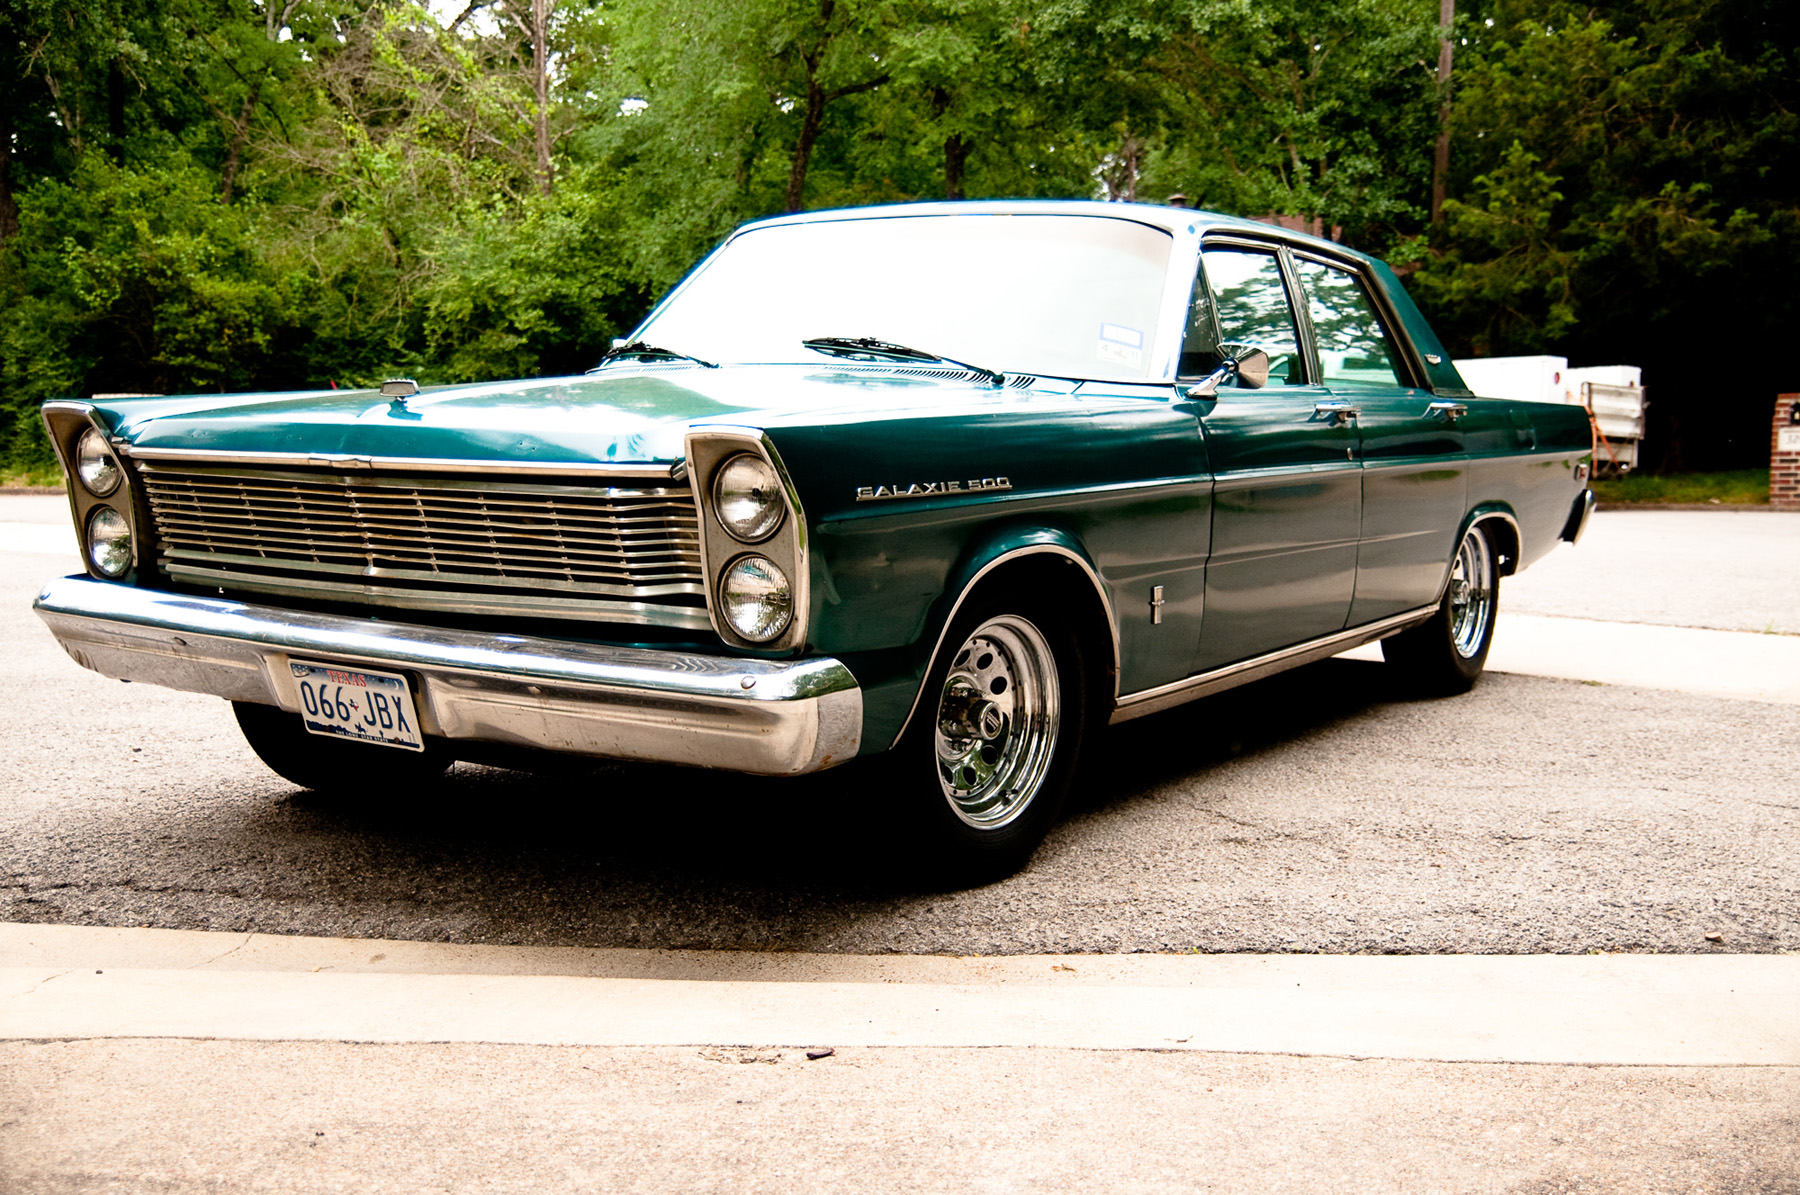 ford galaxie 500 1965 wallpaper 1800x1195 225305 wallpaperup. Black Bedroom Furniture Sets. Home Design Ideas